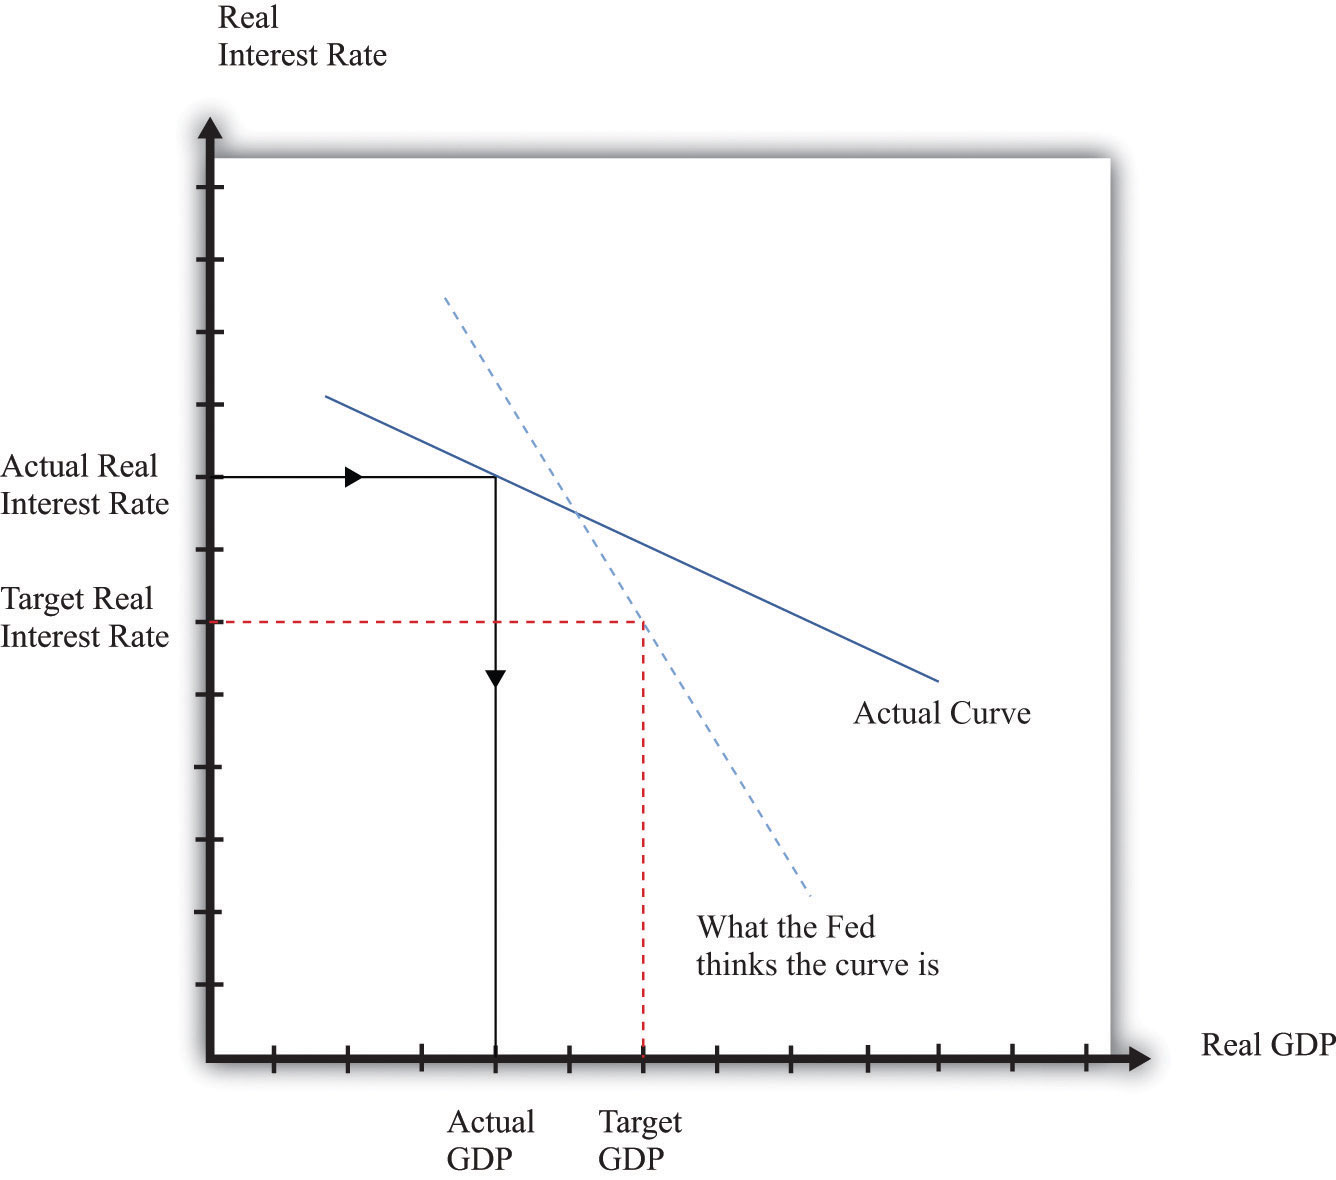 the theory and policy of macroeconomics on inflation rate However, the phillips curve only describes the short run relationship between the inflation rate and the unemployment rate study guide to accompany macroeconomics: theory and policy by b modjtahedit prepared chapter+15+-+inflation+and+unemployment.